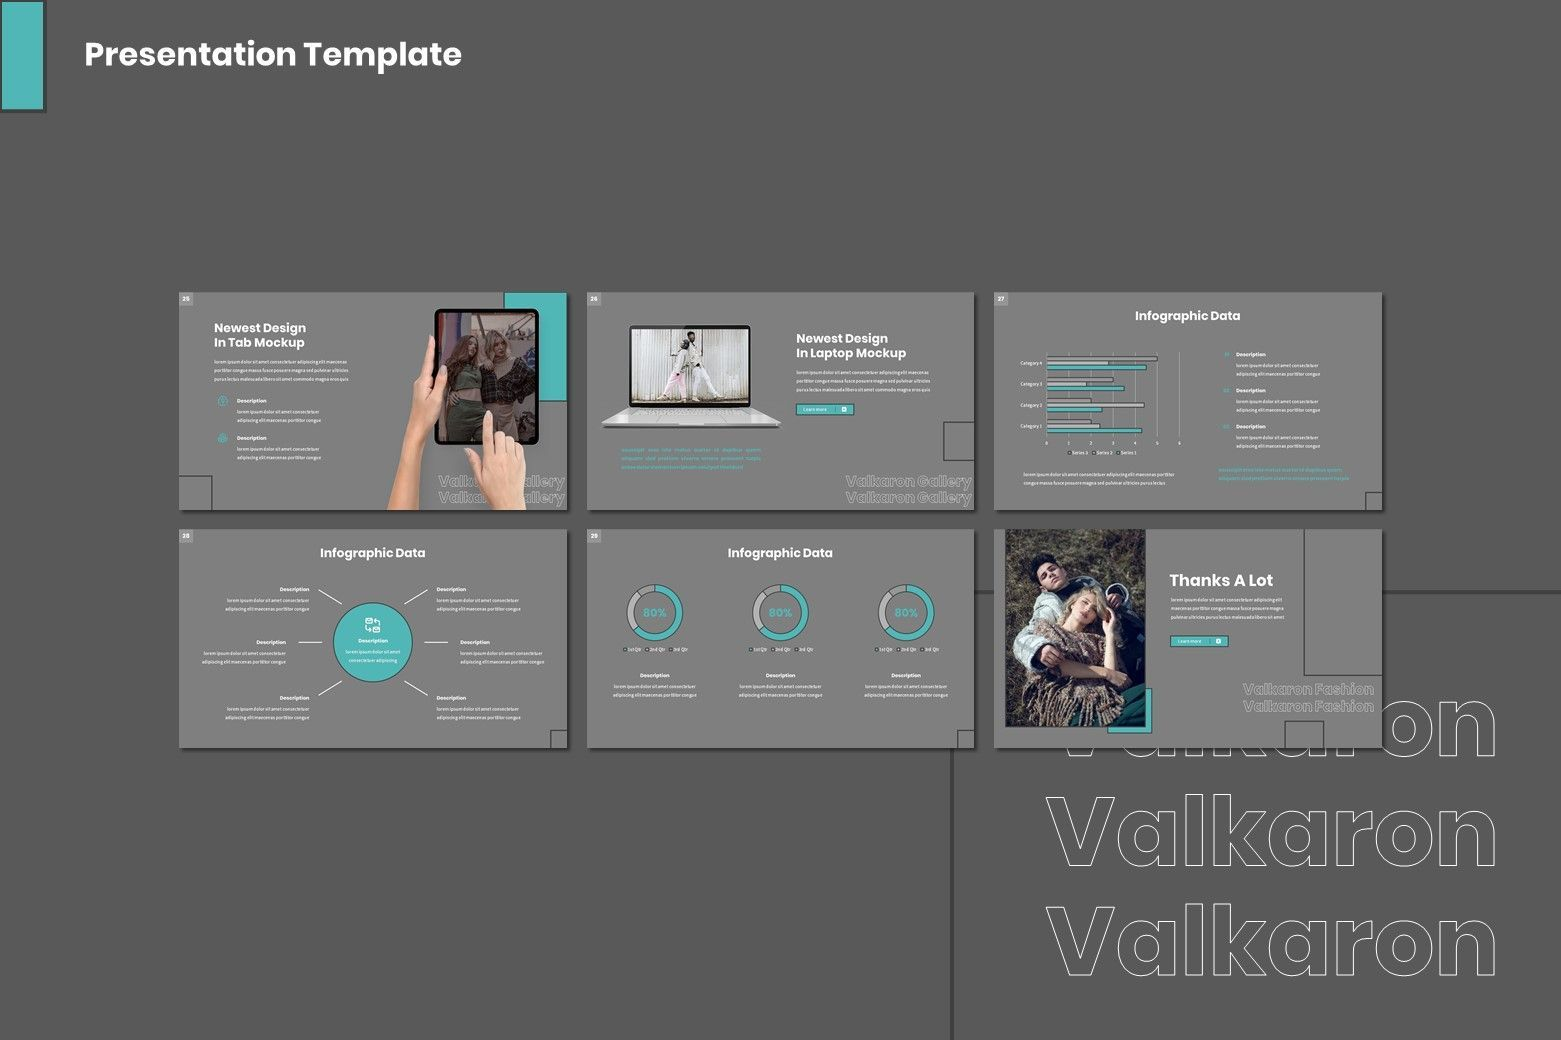 Valkaron - Powerpoint Template, Slide 3, 08005, Presentation Templates — PoweredTemplate.com